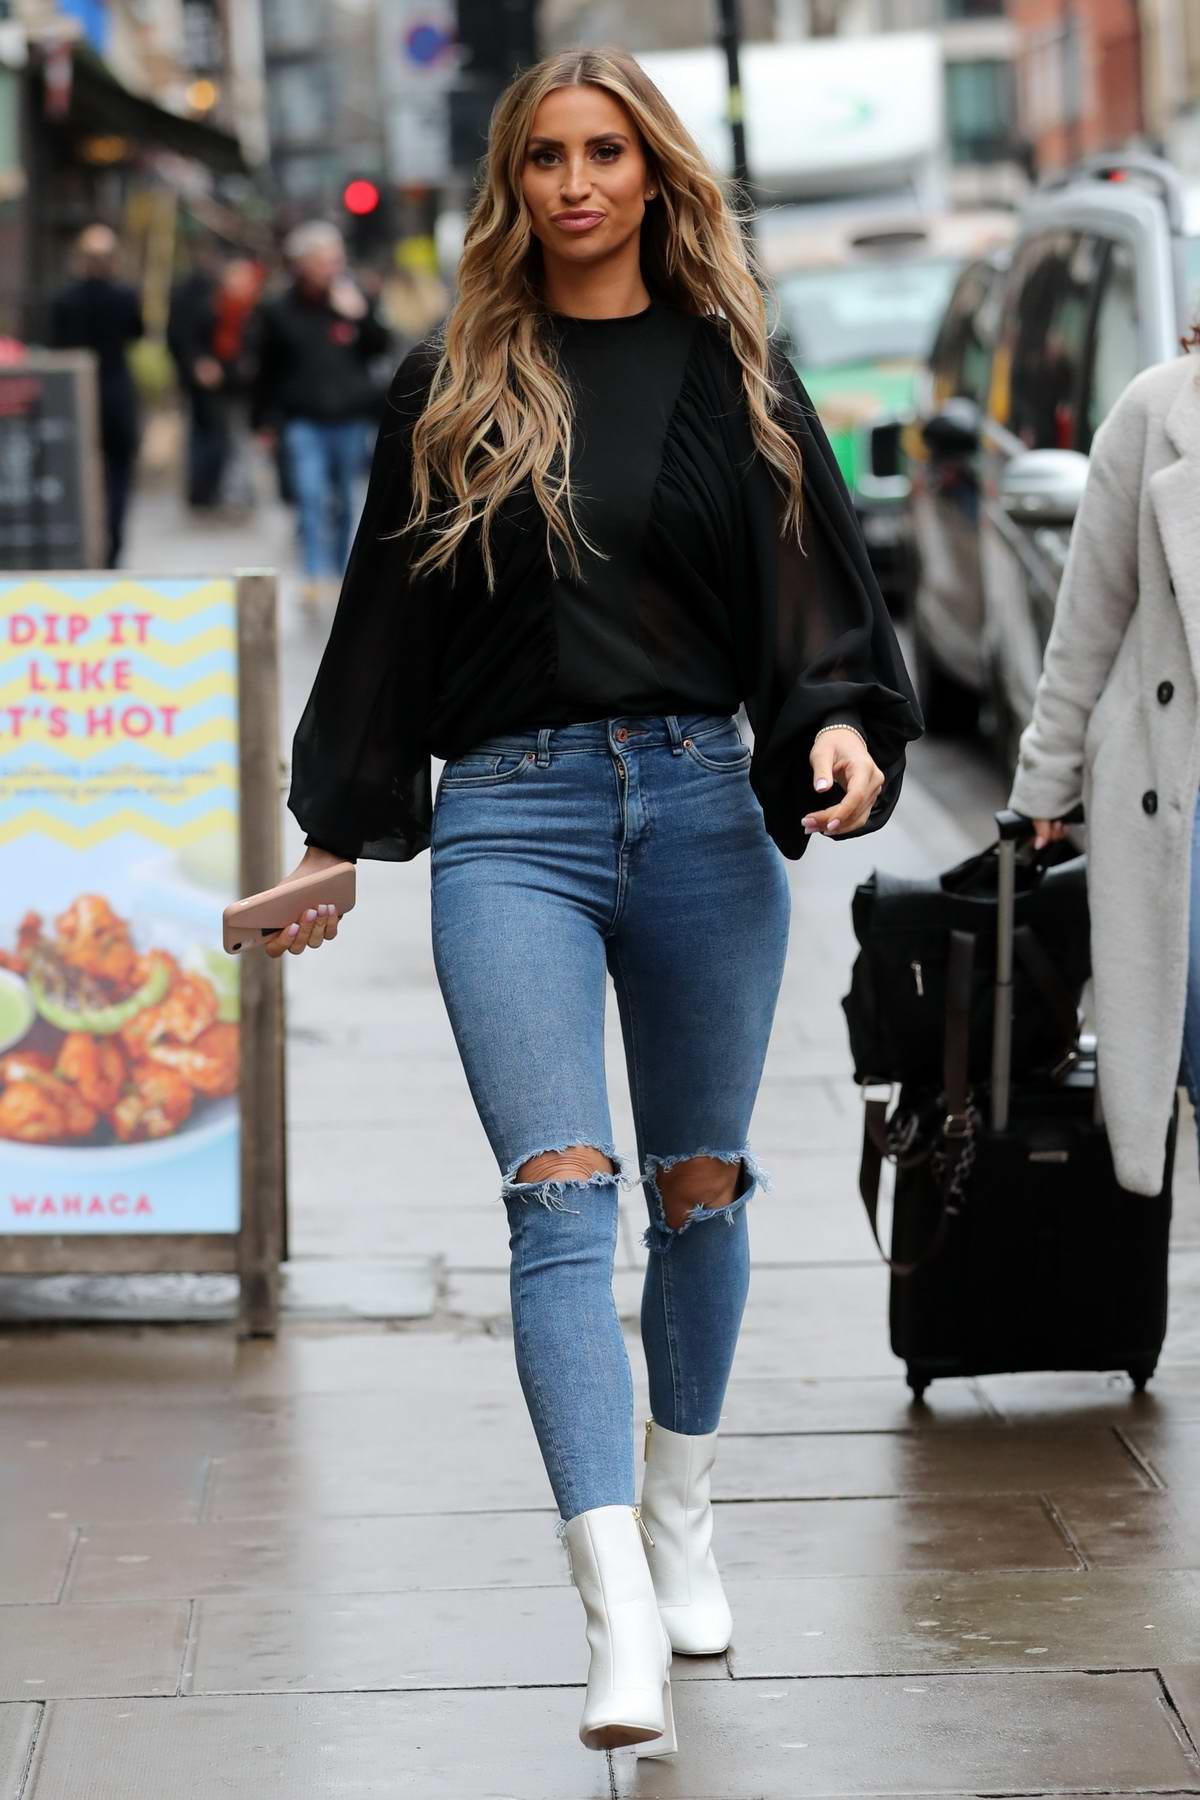 Ferne McCann wears a black top and skin-tight jeans while heading for a business meeting in Soho, London, UK